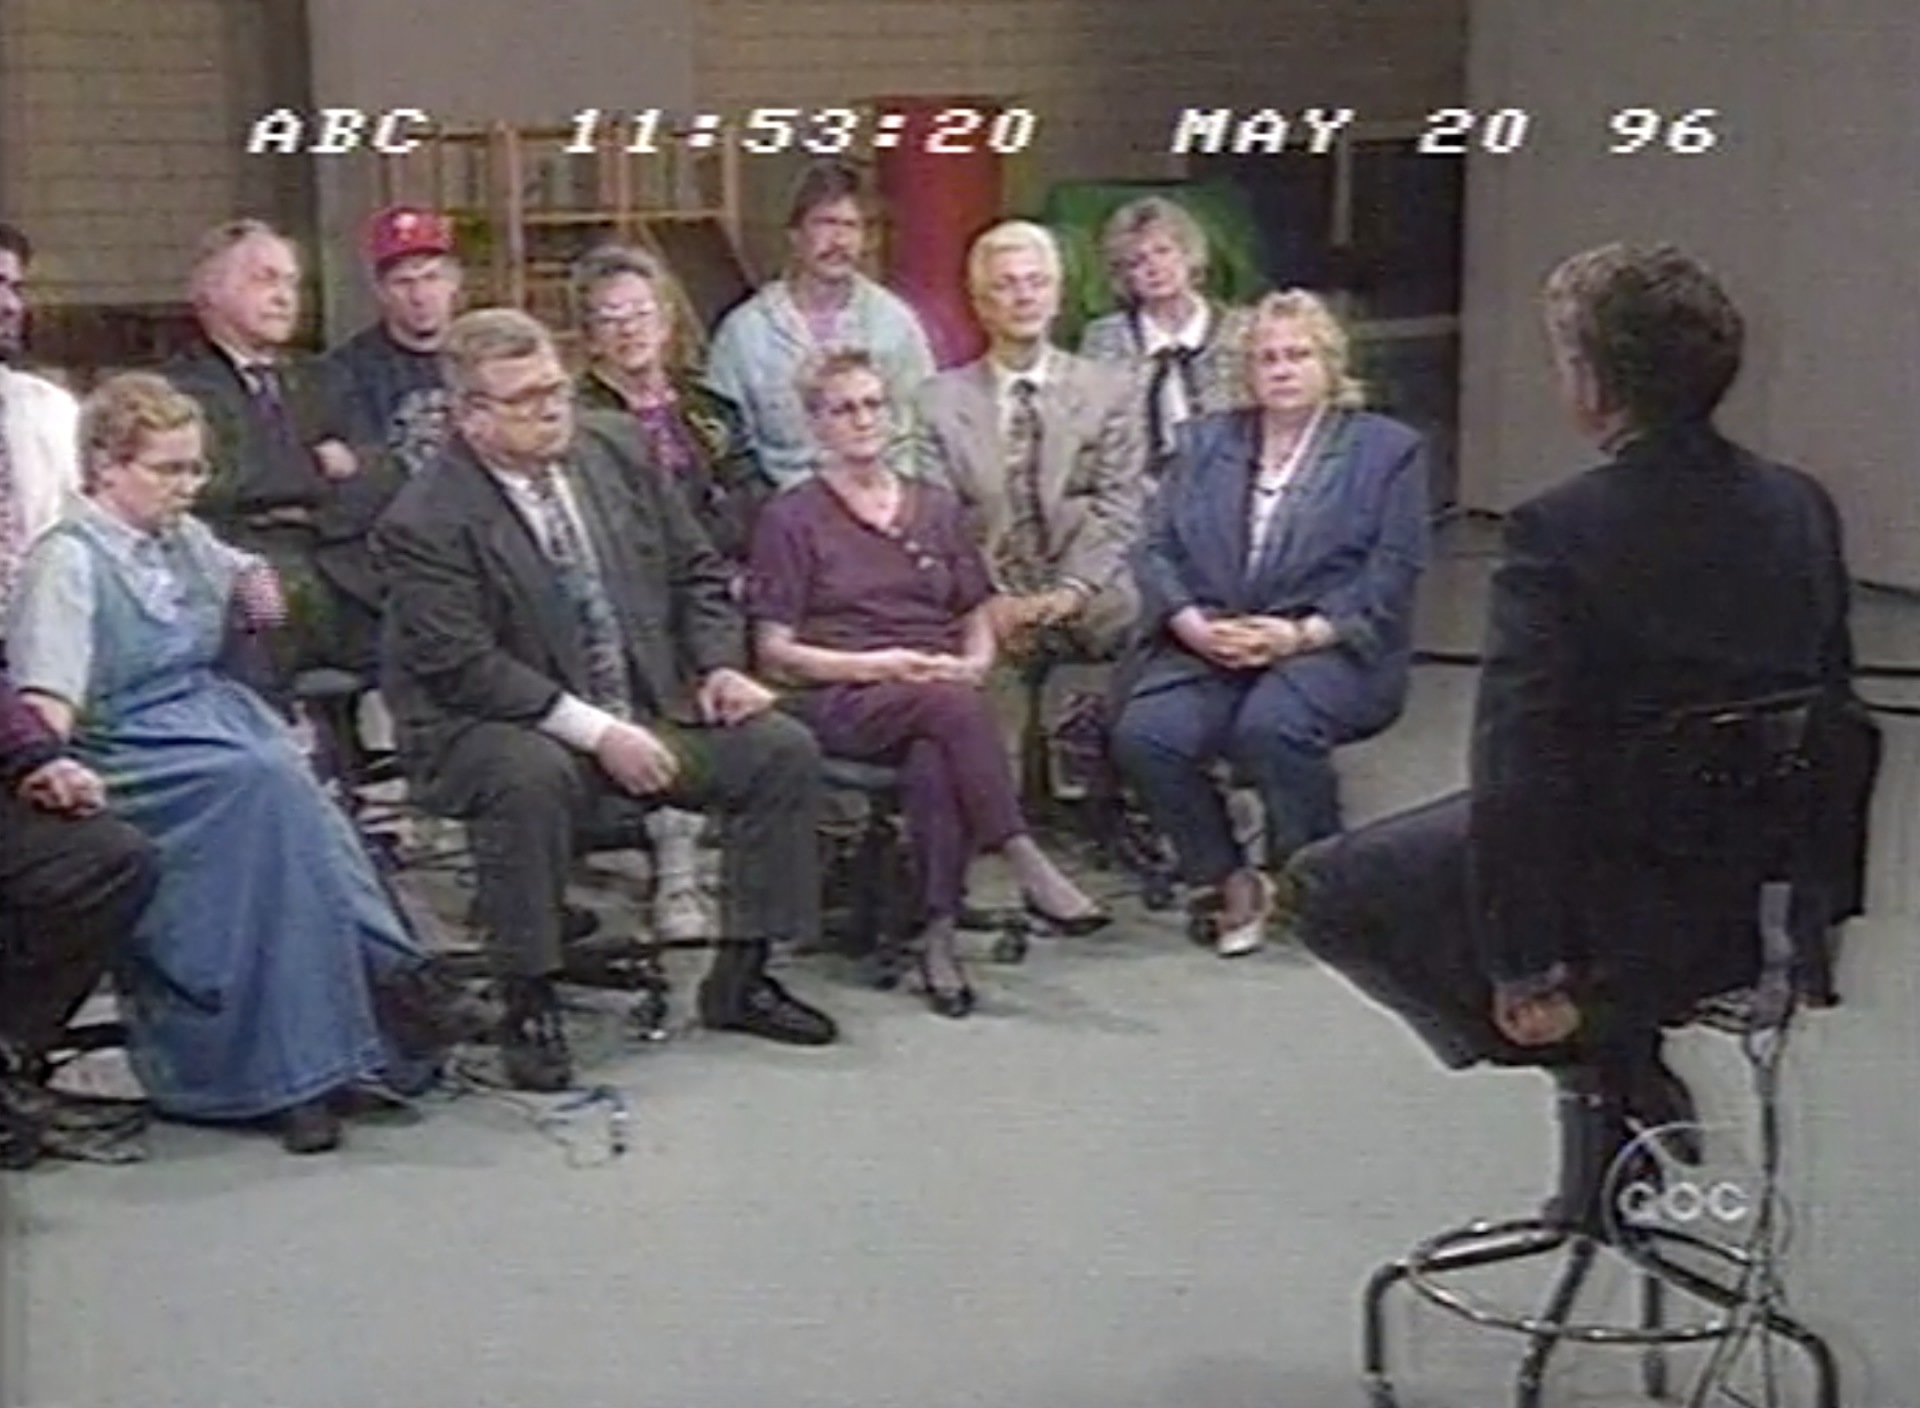 During Nightline's 1996 feature, host Ted Koppel convened a forum of Bridesburg residents to talk about the neighborhood's treatment of Ward.